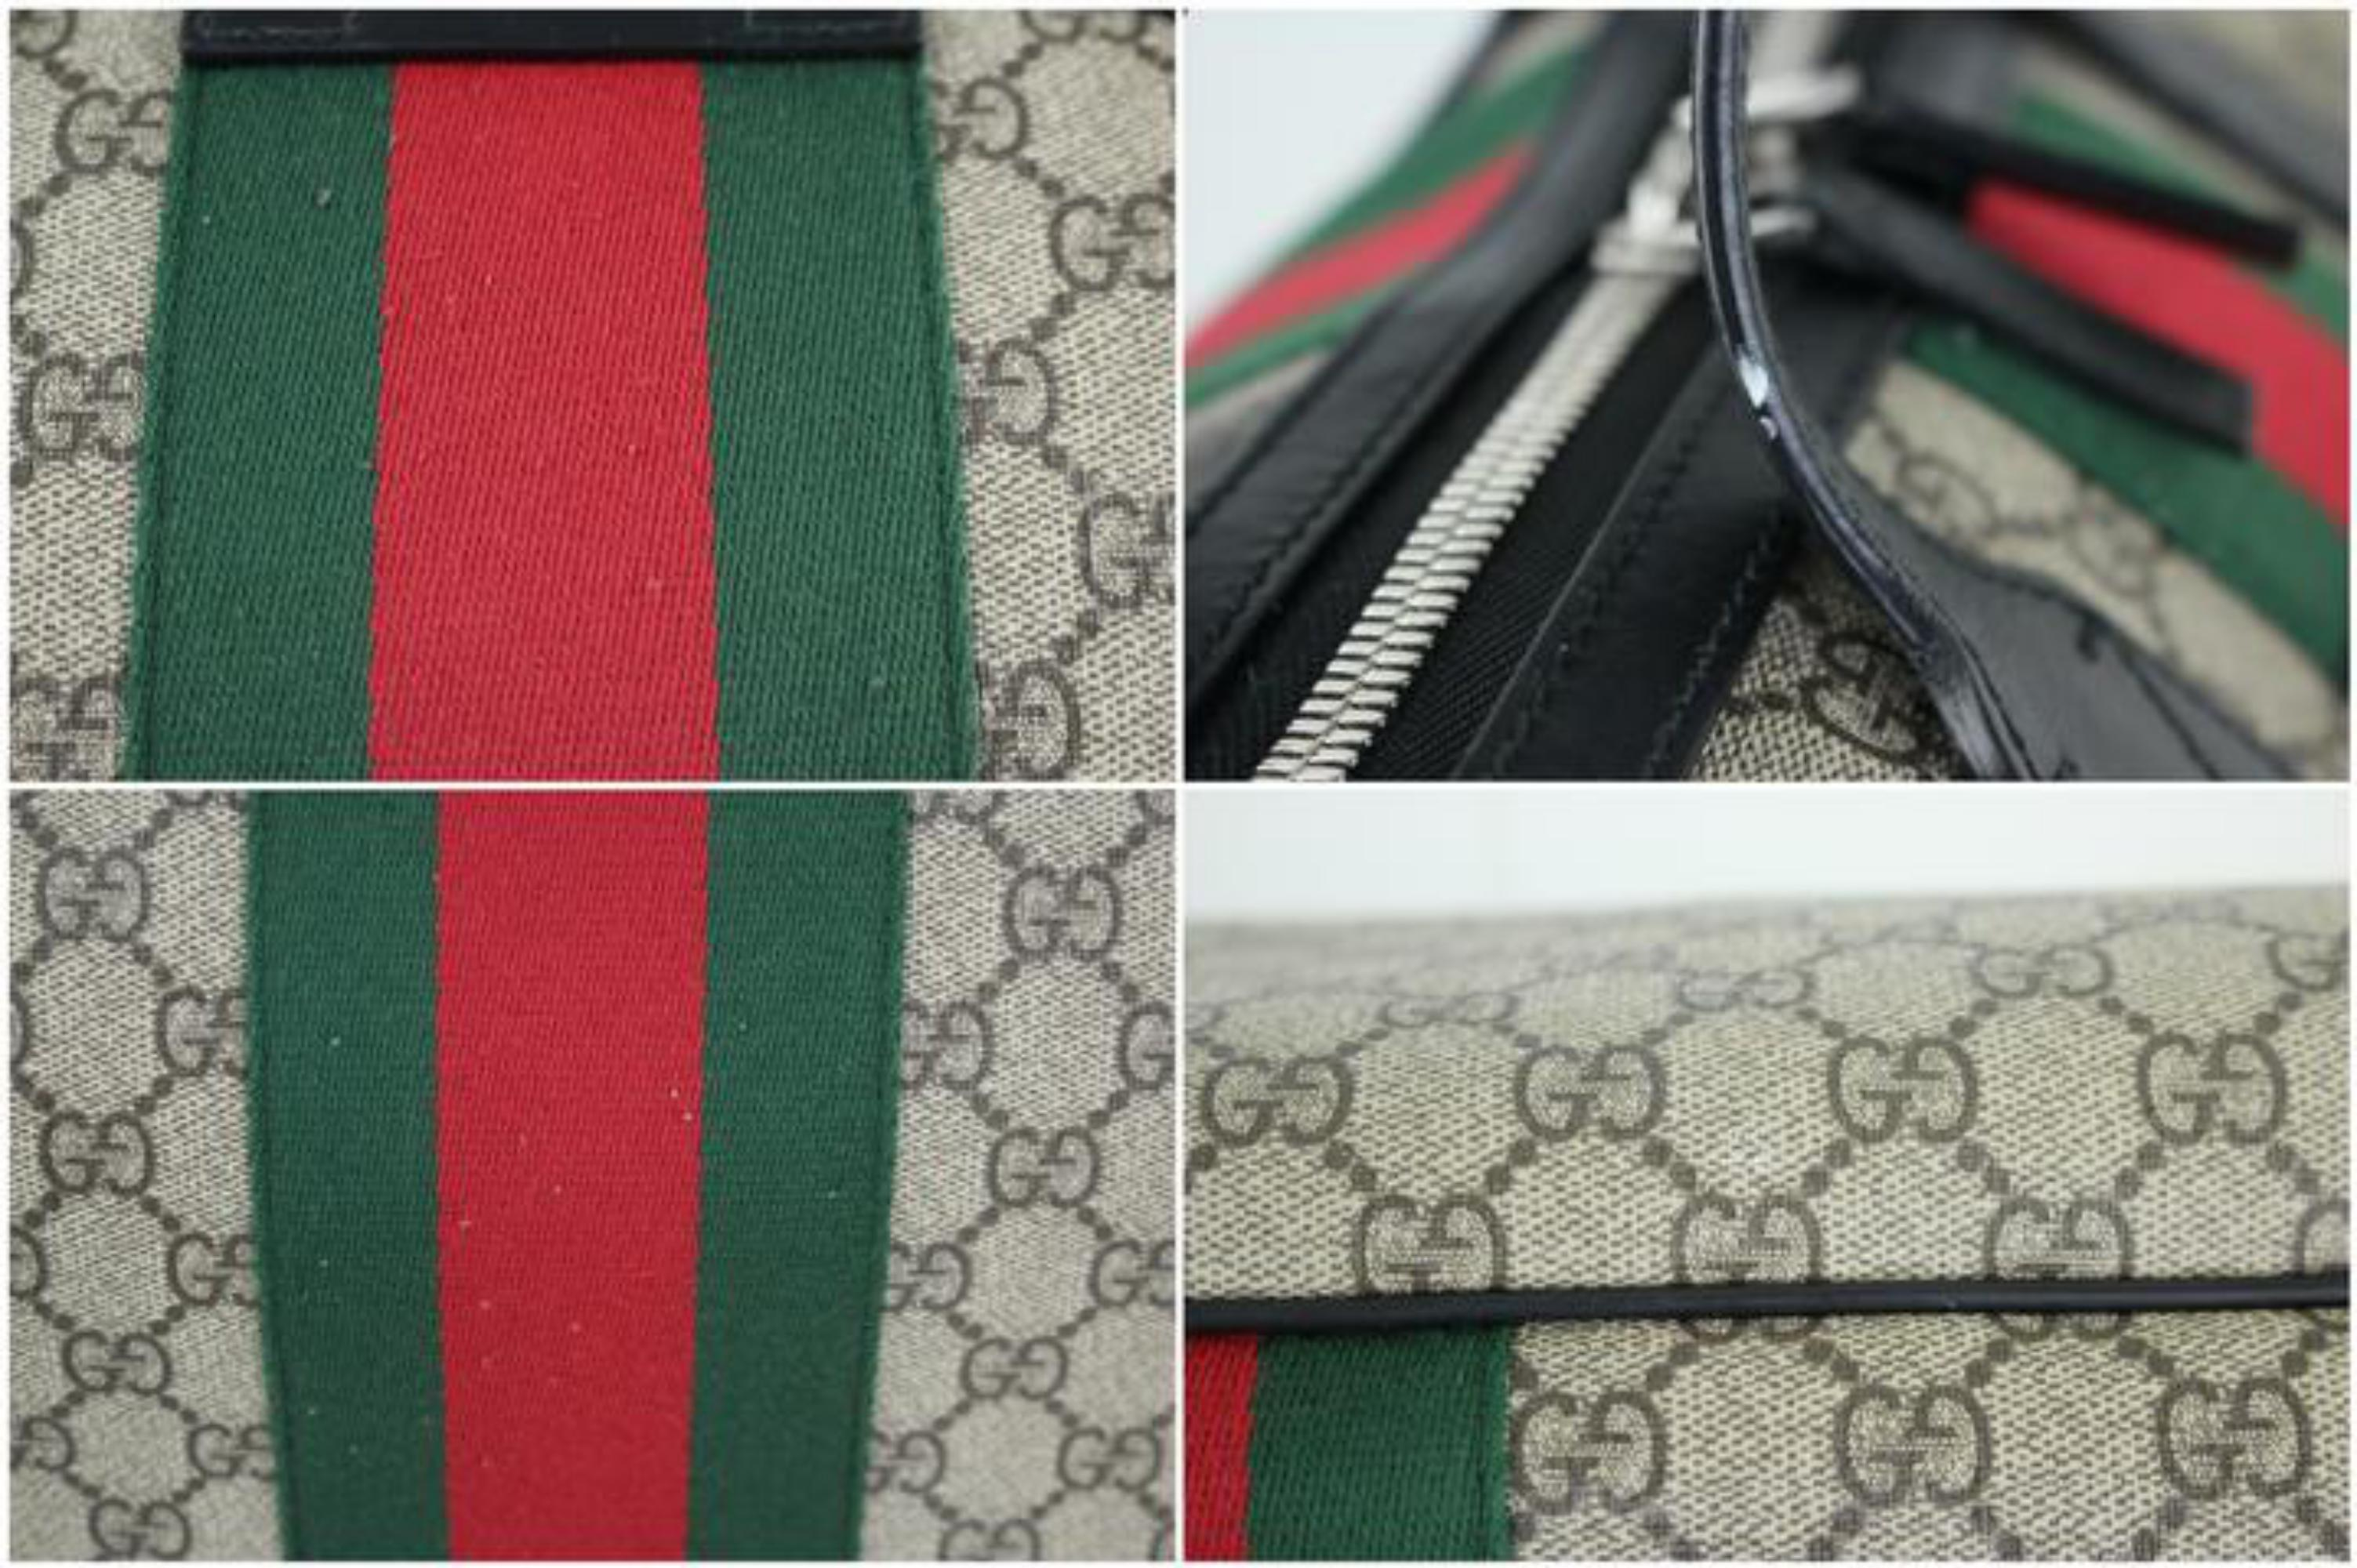 4ed02e1a84 Gucci Gg Supreme Web Duffle 2way 9gt914 Black Travel Bag - Walmart.com